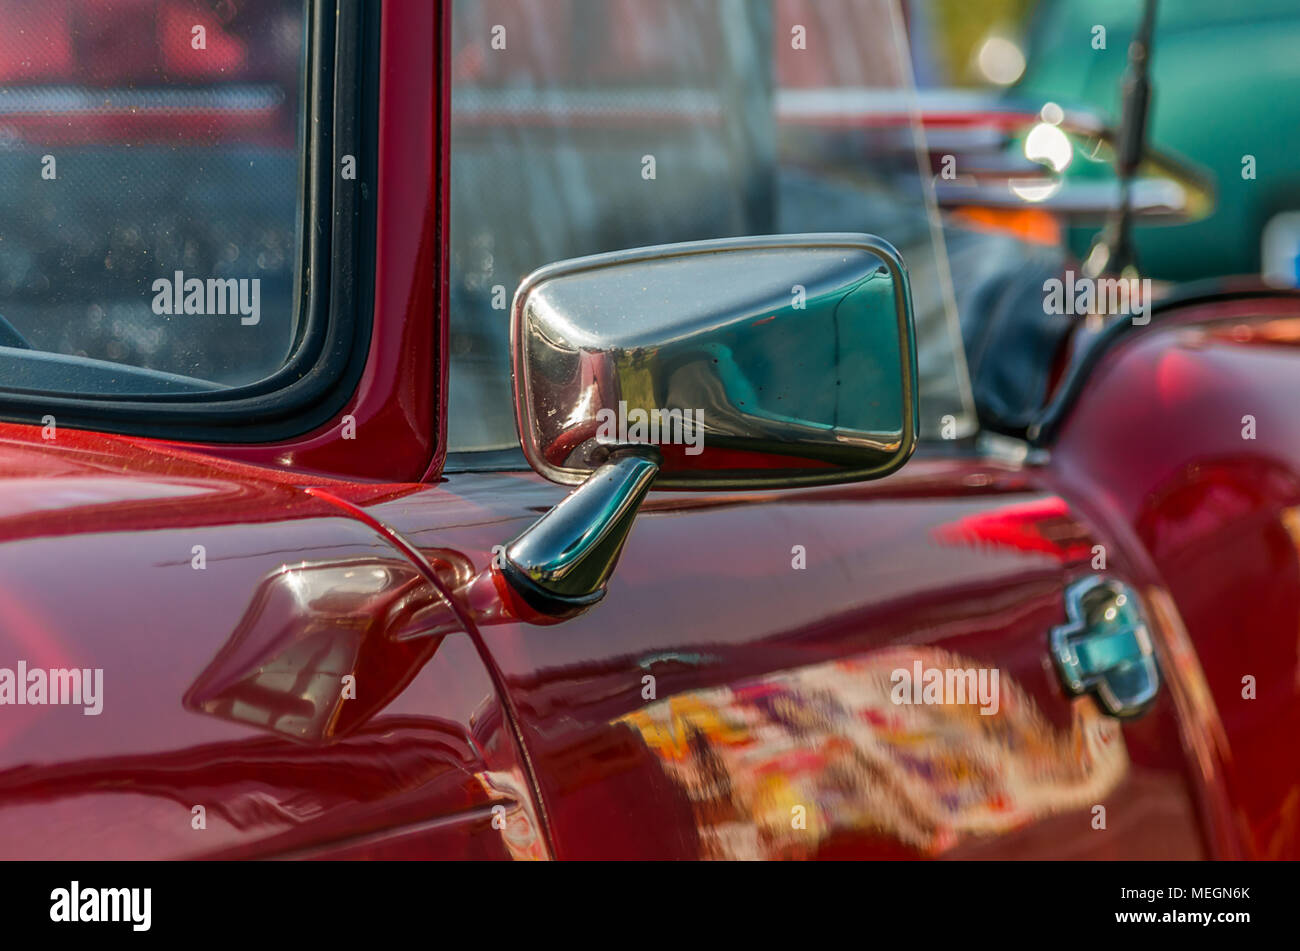 Red Triumph Spitfire vintage convertible car mirror closeup in Gliwice, Silesian Upland, Poland. - Stock Image